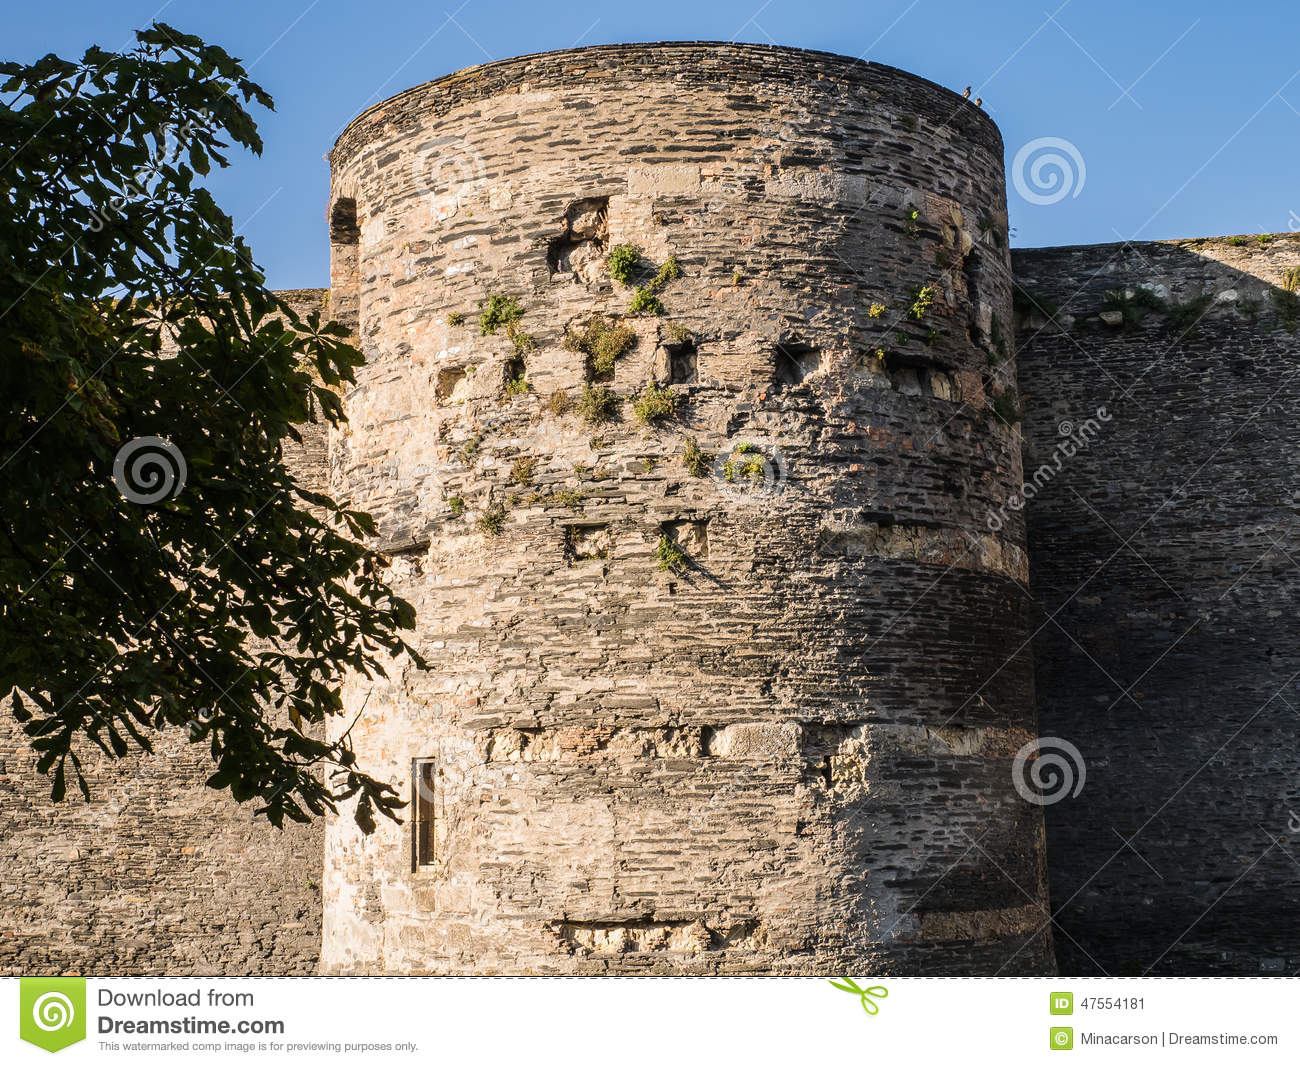 Tower at Angers chateau with foliage growing from the stones, Fr